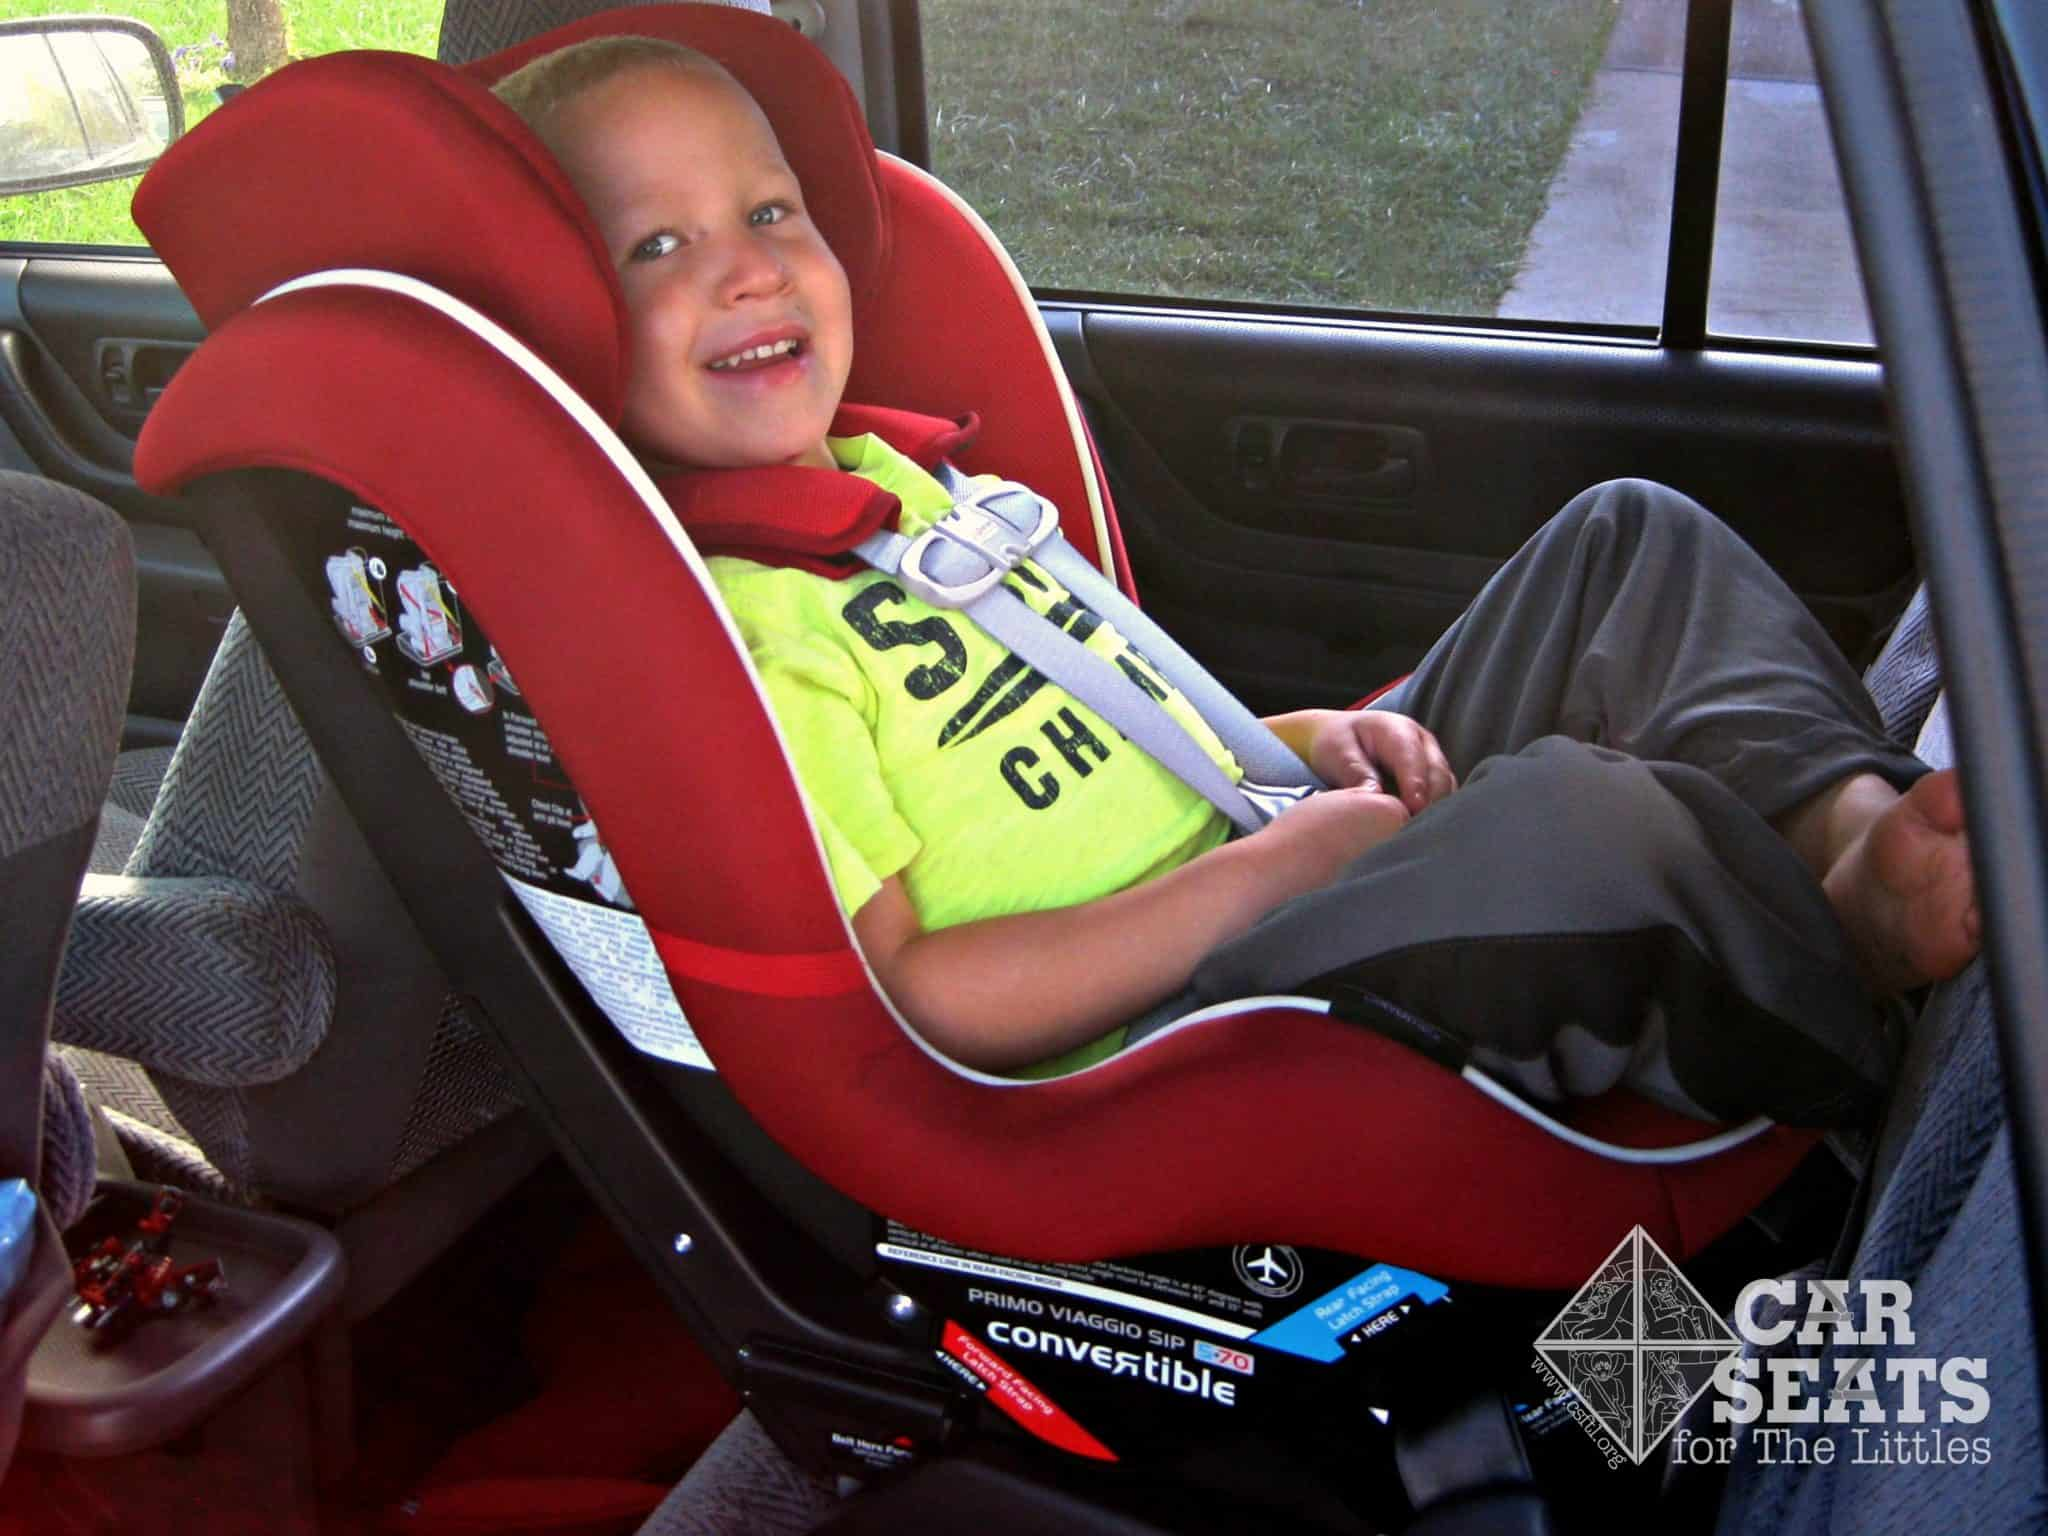 Rear Facing Car Seat Age 4 Rear Facing Past 40 Lbs Car Seats For The Littles